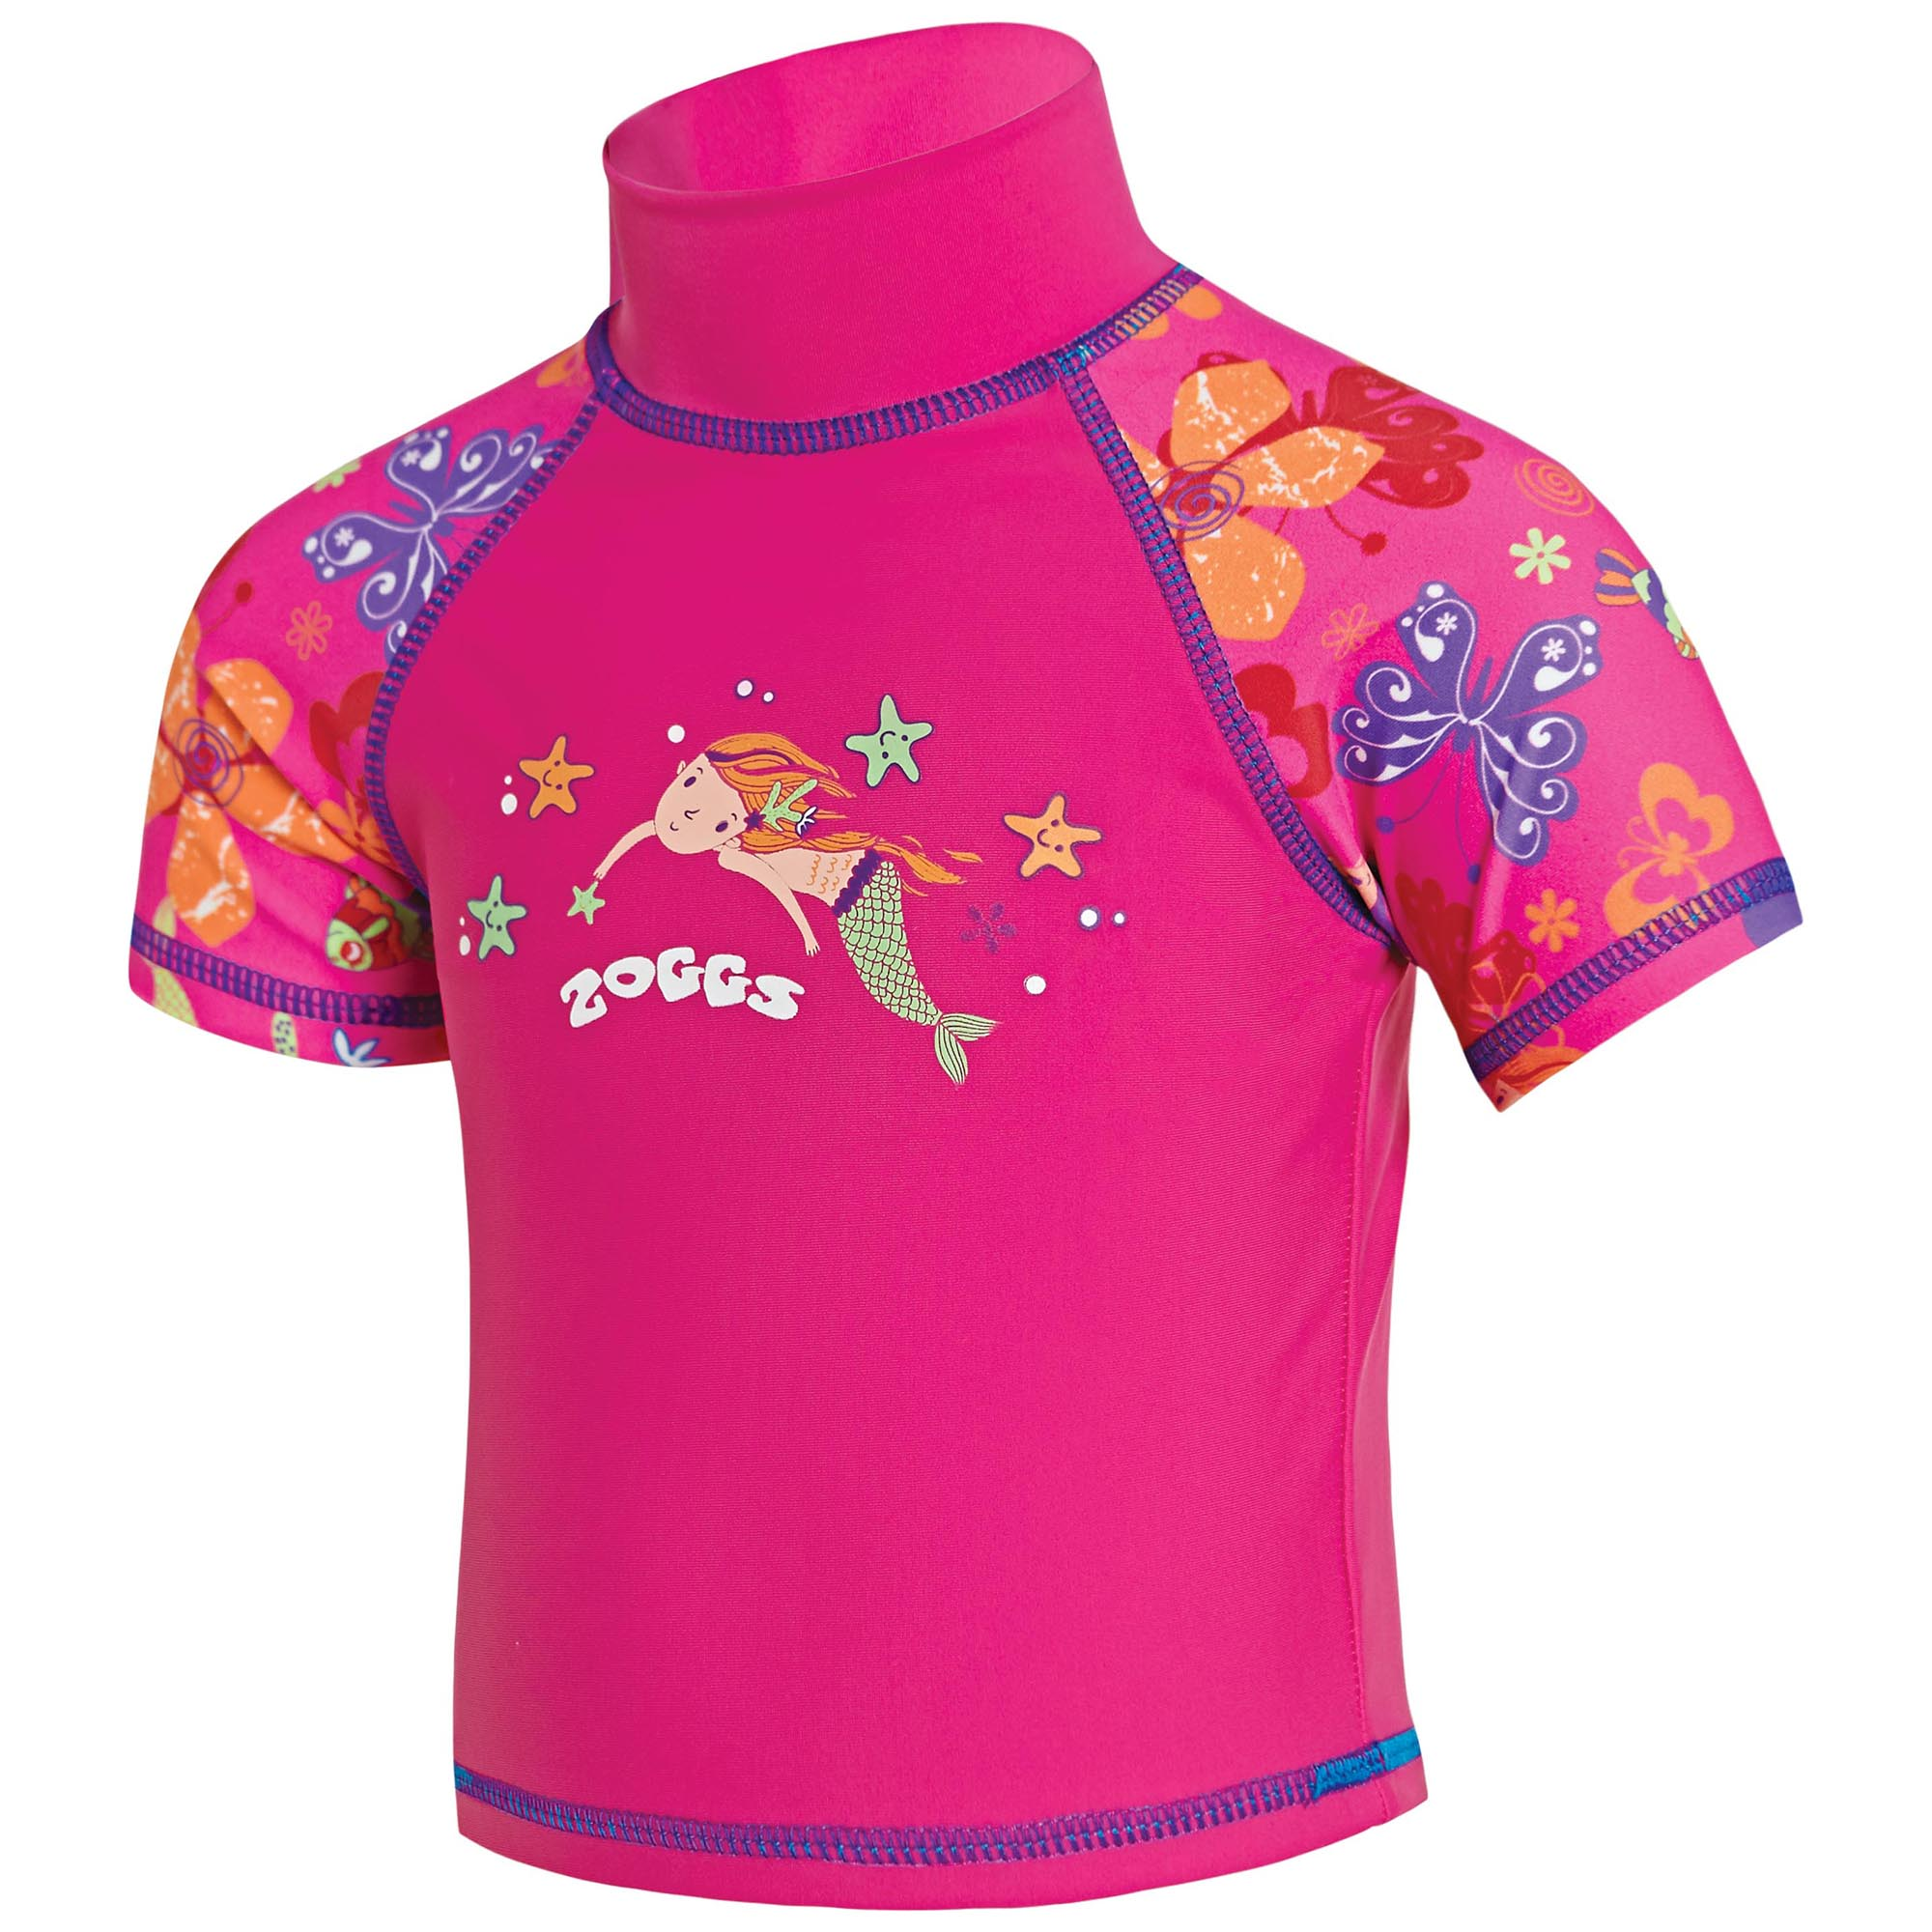 Zoggs Mermaid Flower Sun Protection Top - 6 - 12 Months